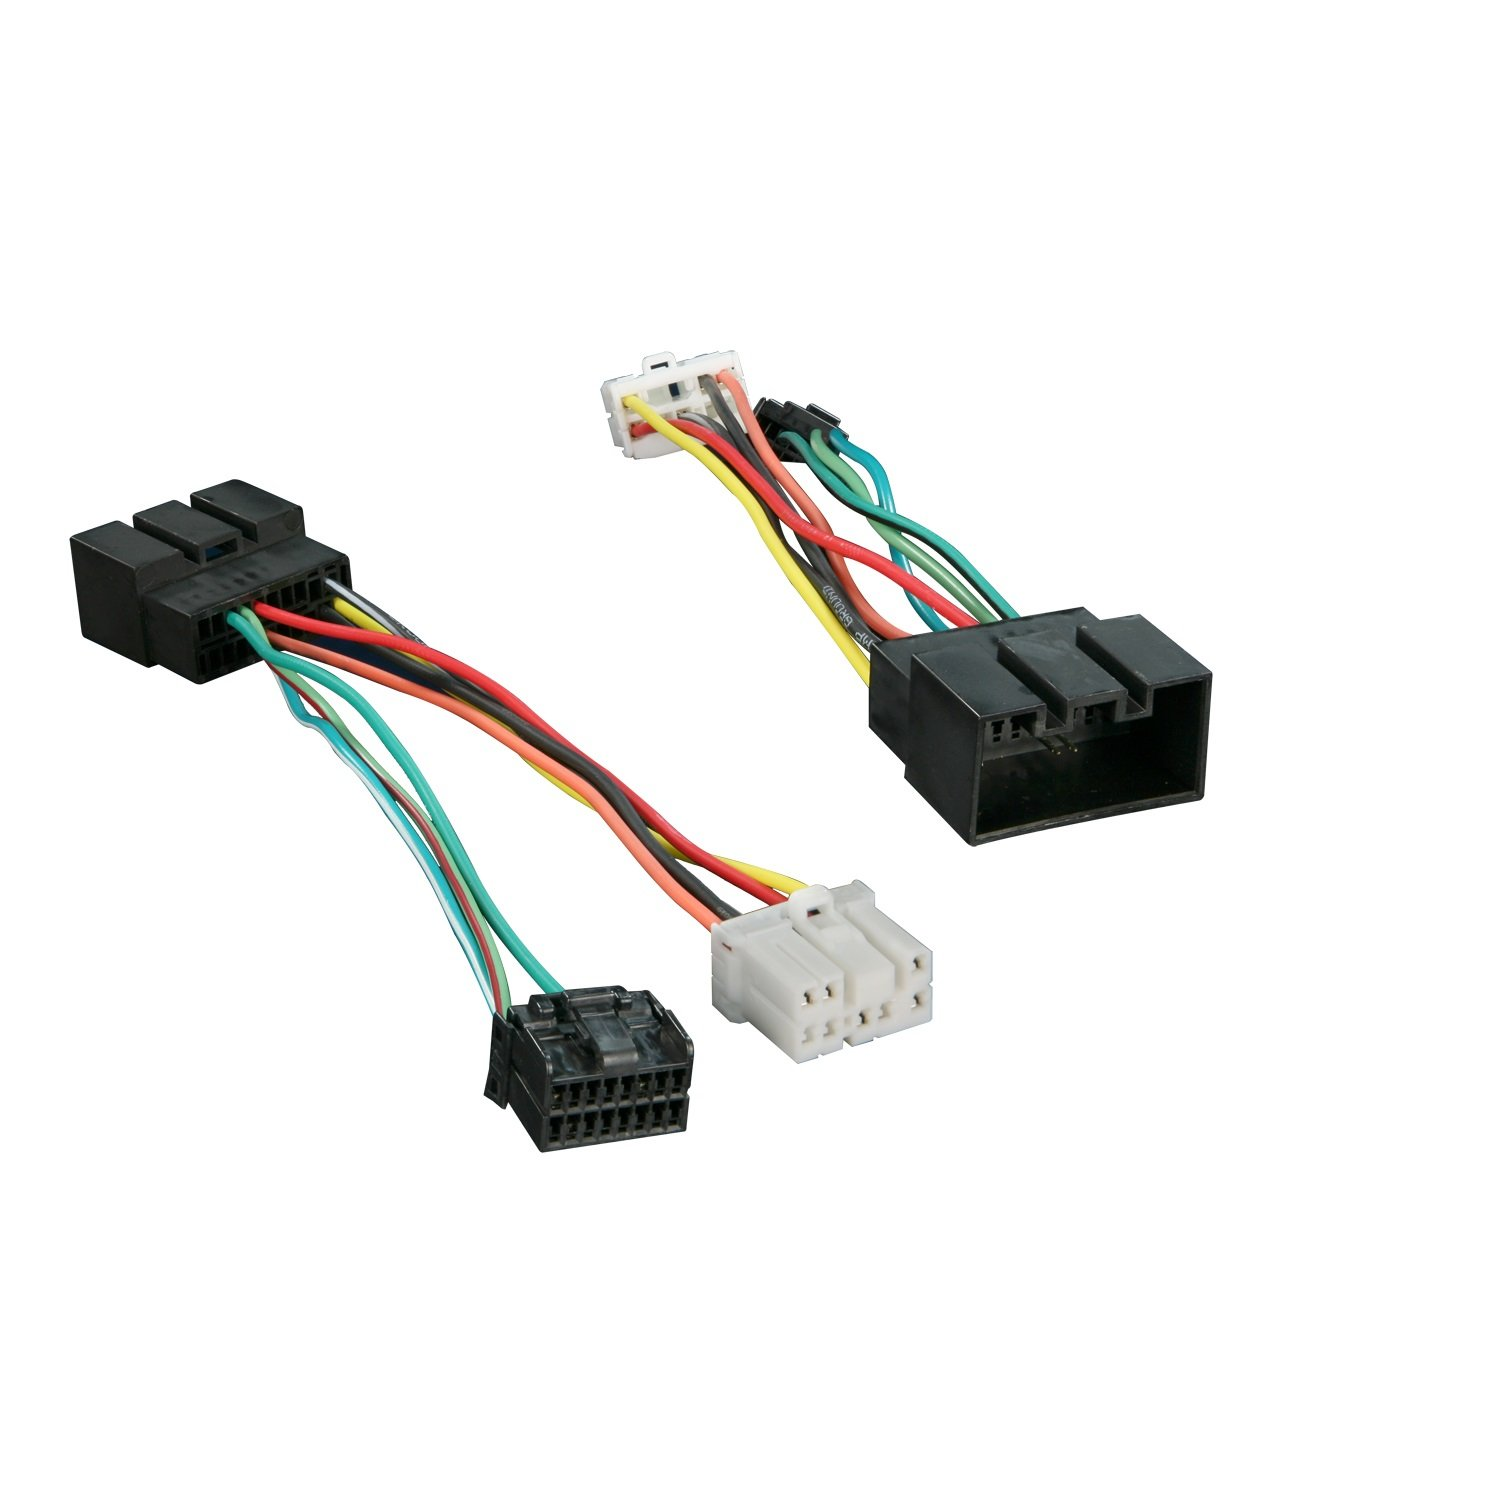 small resolution of radio wiring harnesses walmart just wiring diagram metra 70 5716 turbowire car stereo wiring harness walmart